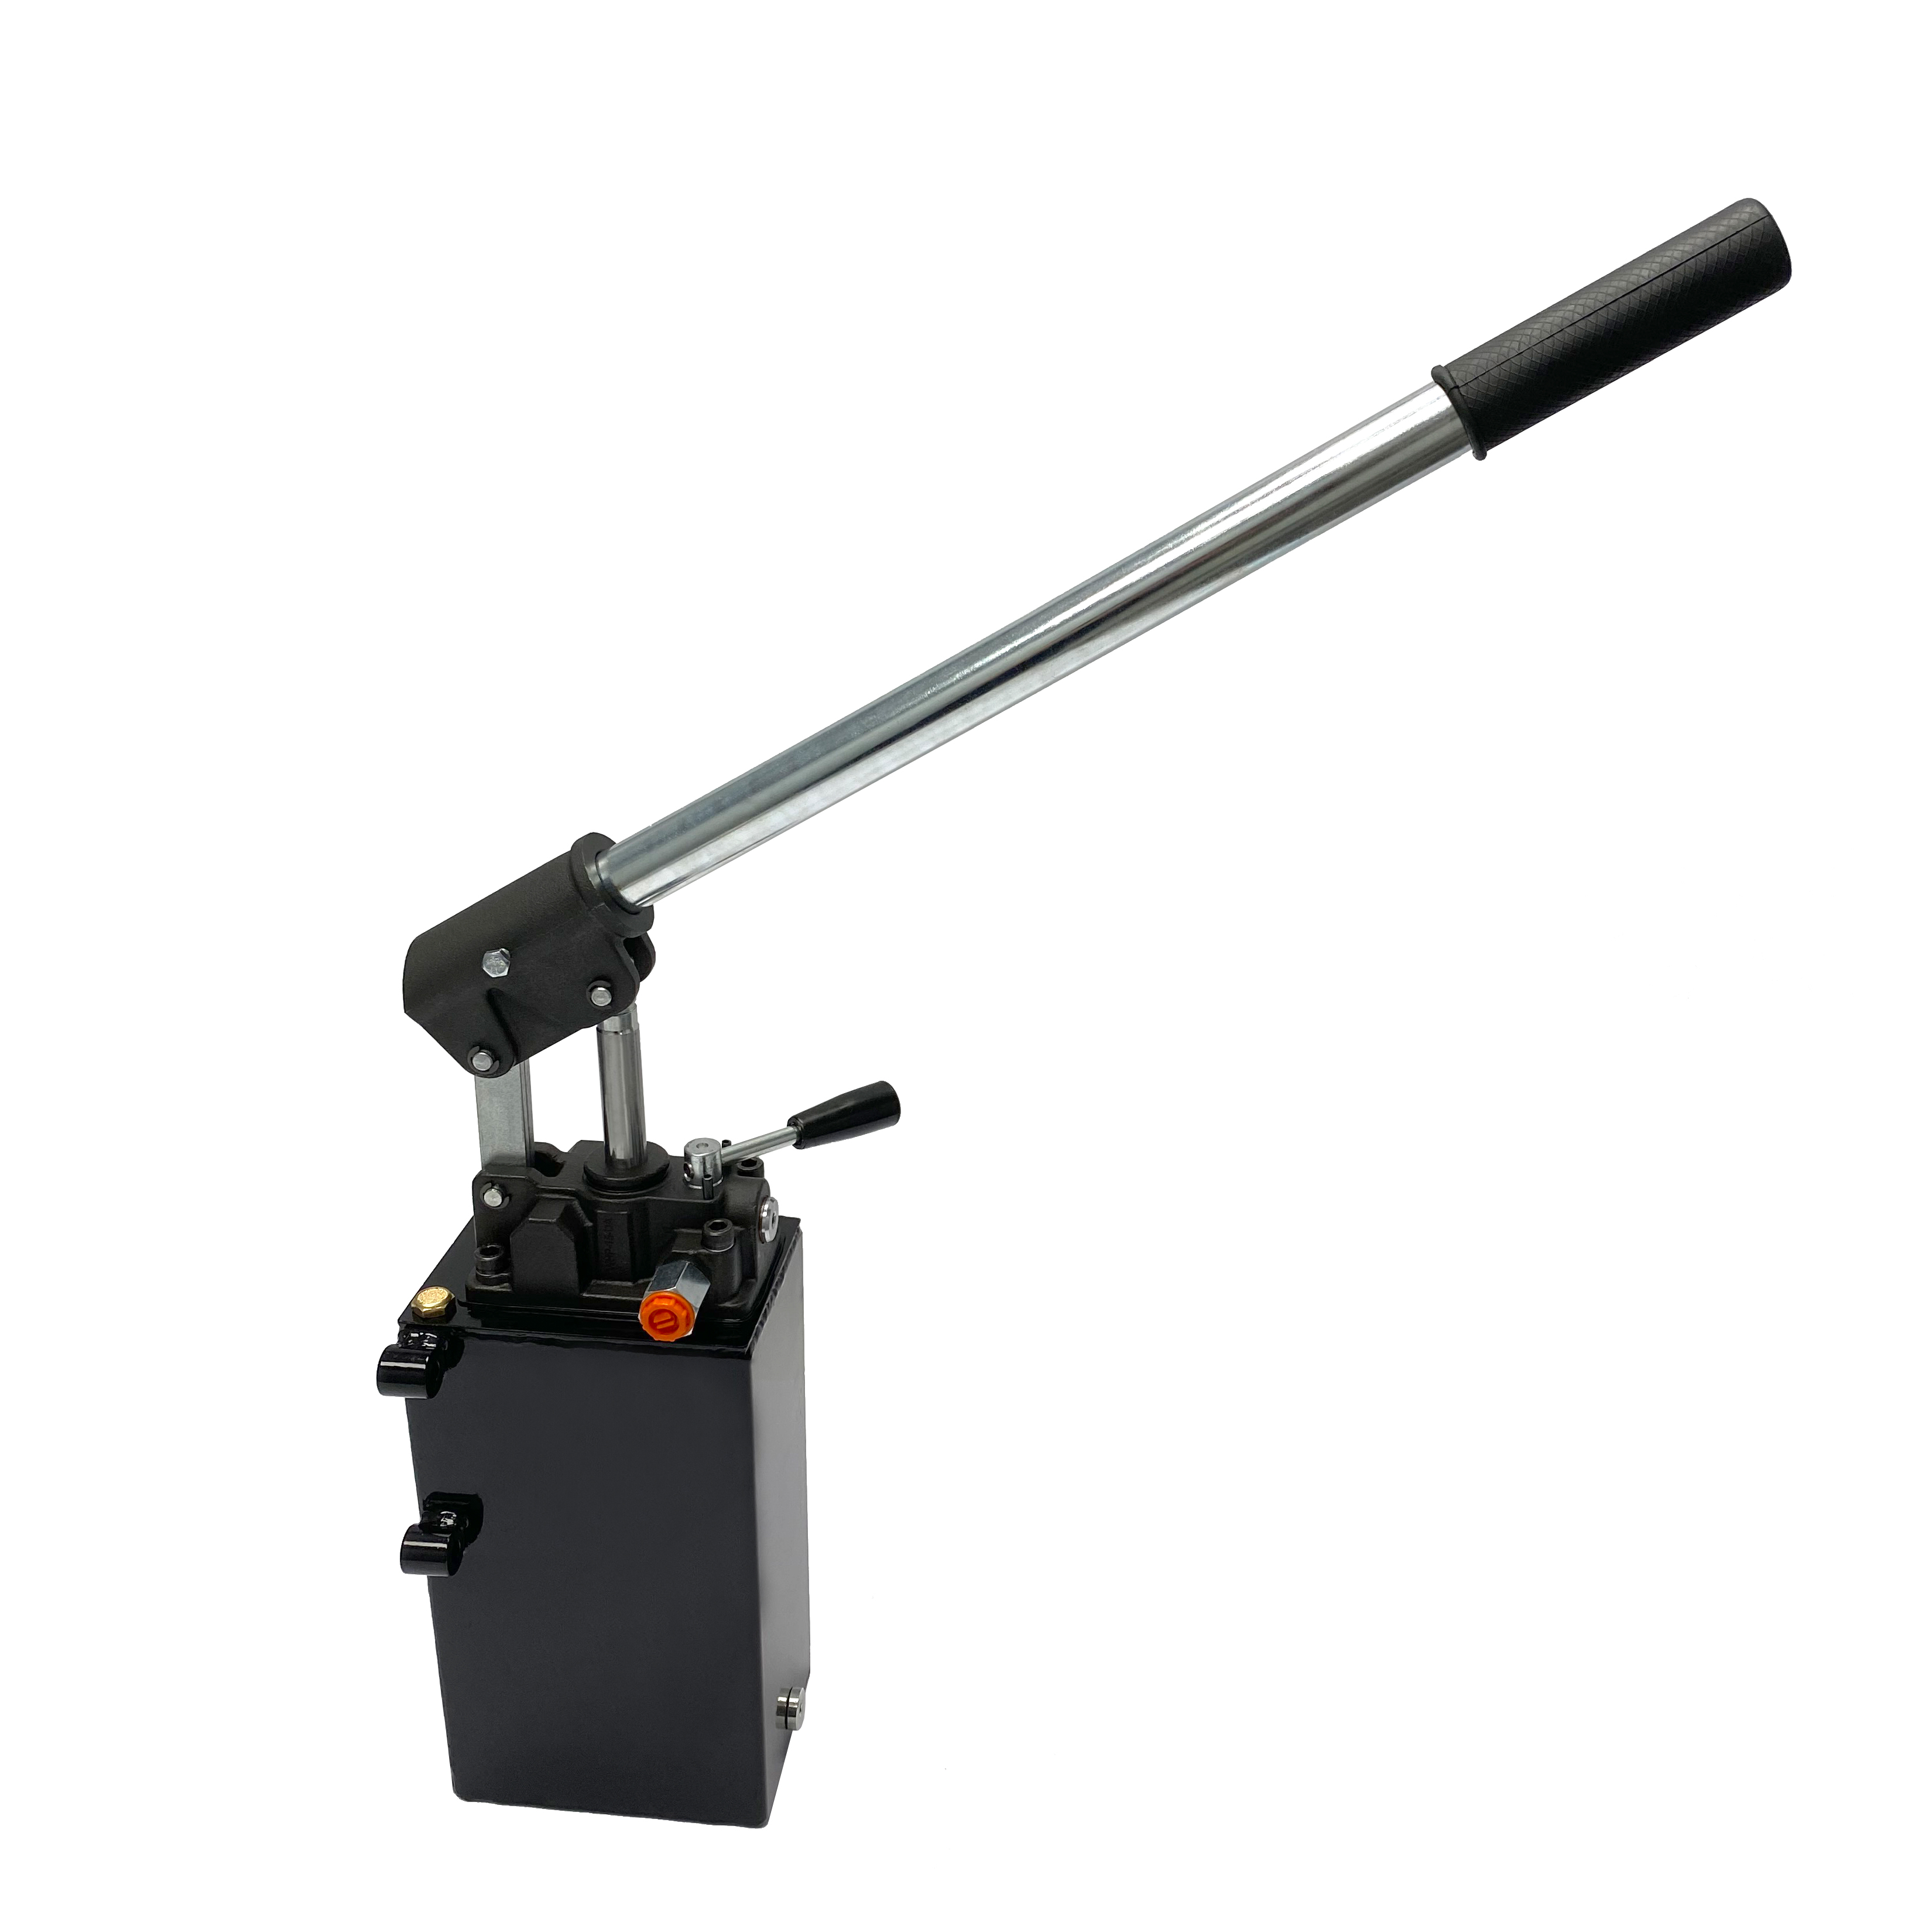 Hydraulic piston hand pump with double acting changeover valve for double acting cylinder 2.7 CID with 3 quart steel tank by Hydro-Pack   Magister Hydraulics